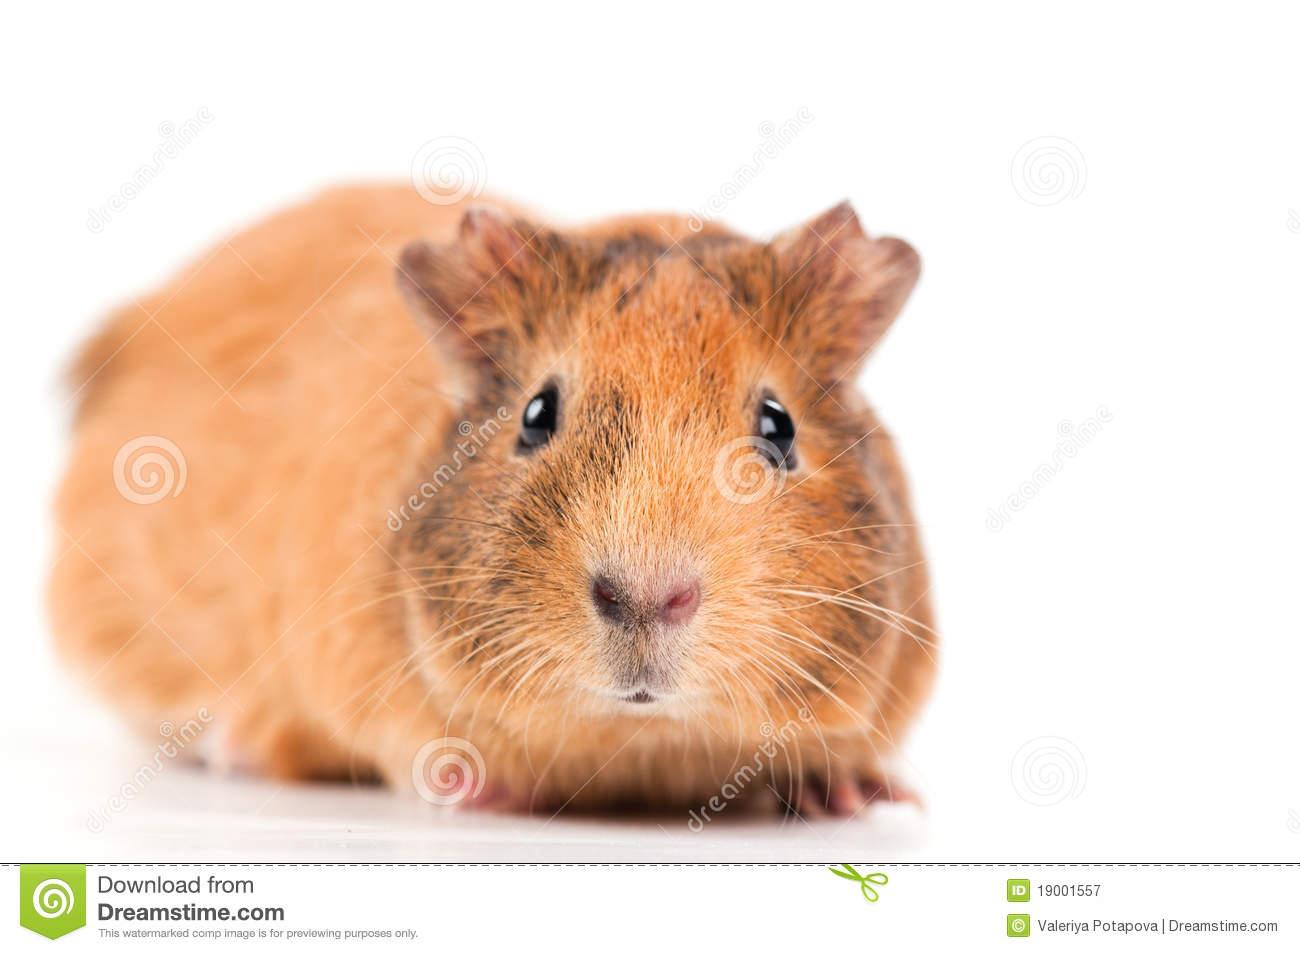 Guinea pig royalty free stock photography image 19001557 for Guinea pig pictures free